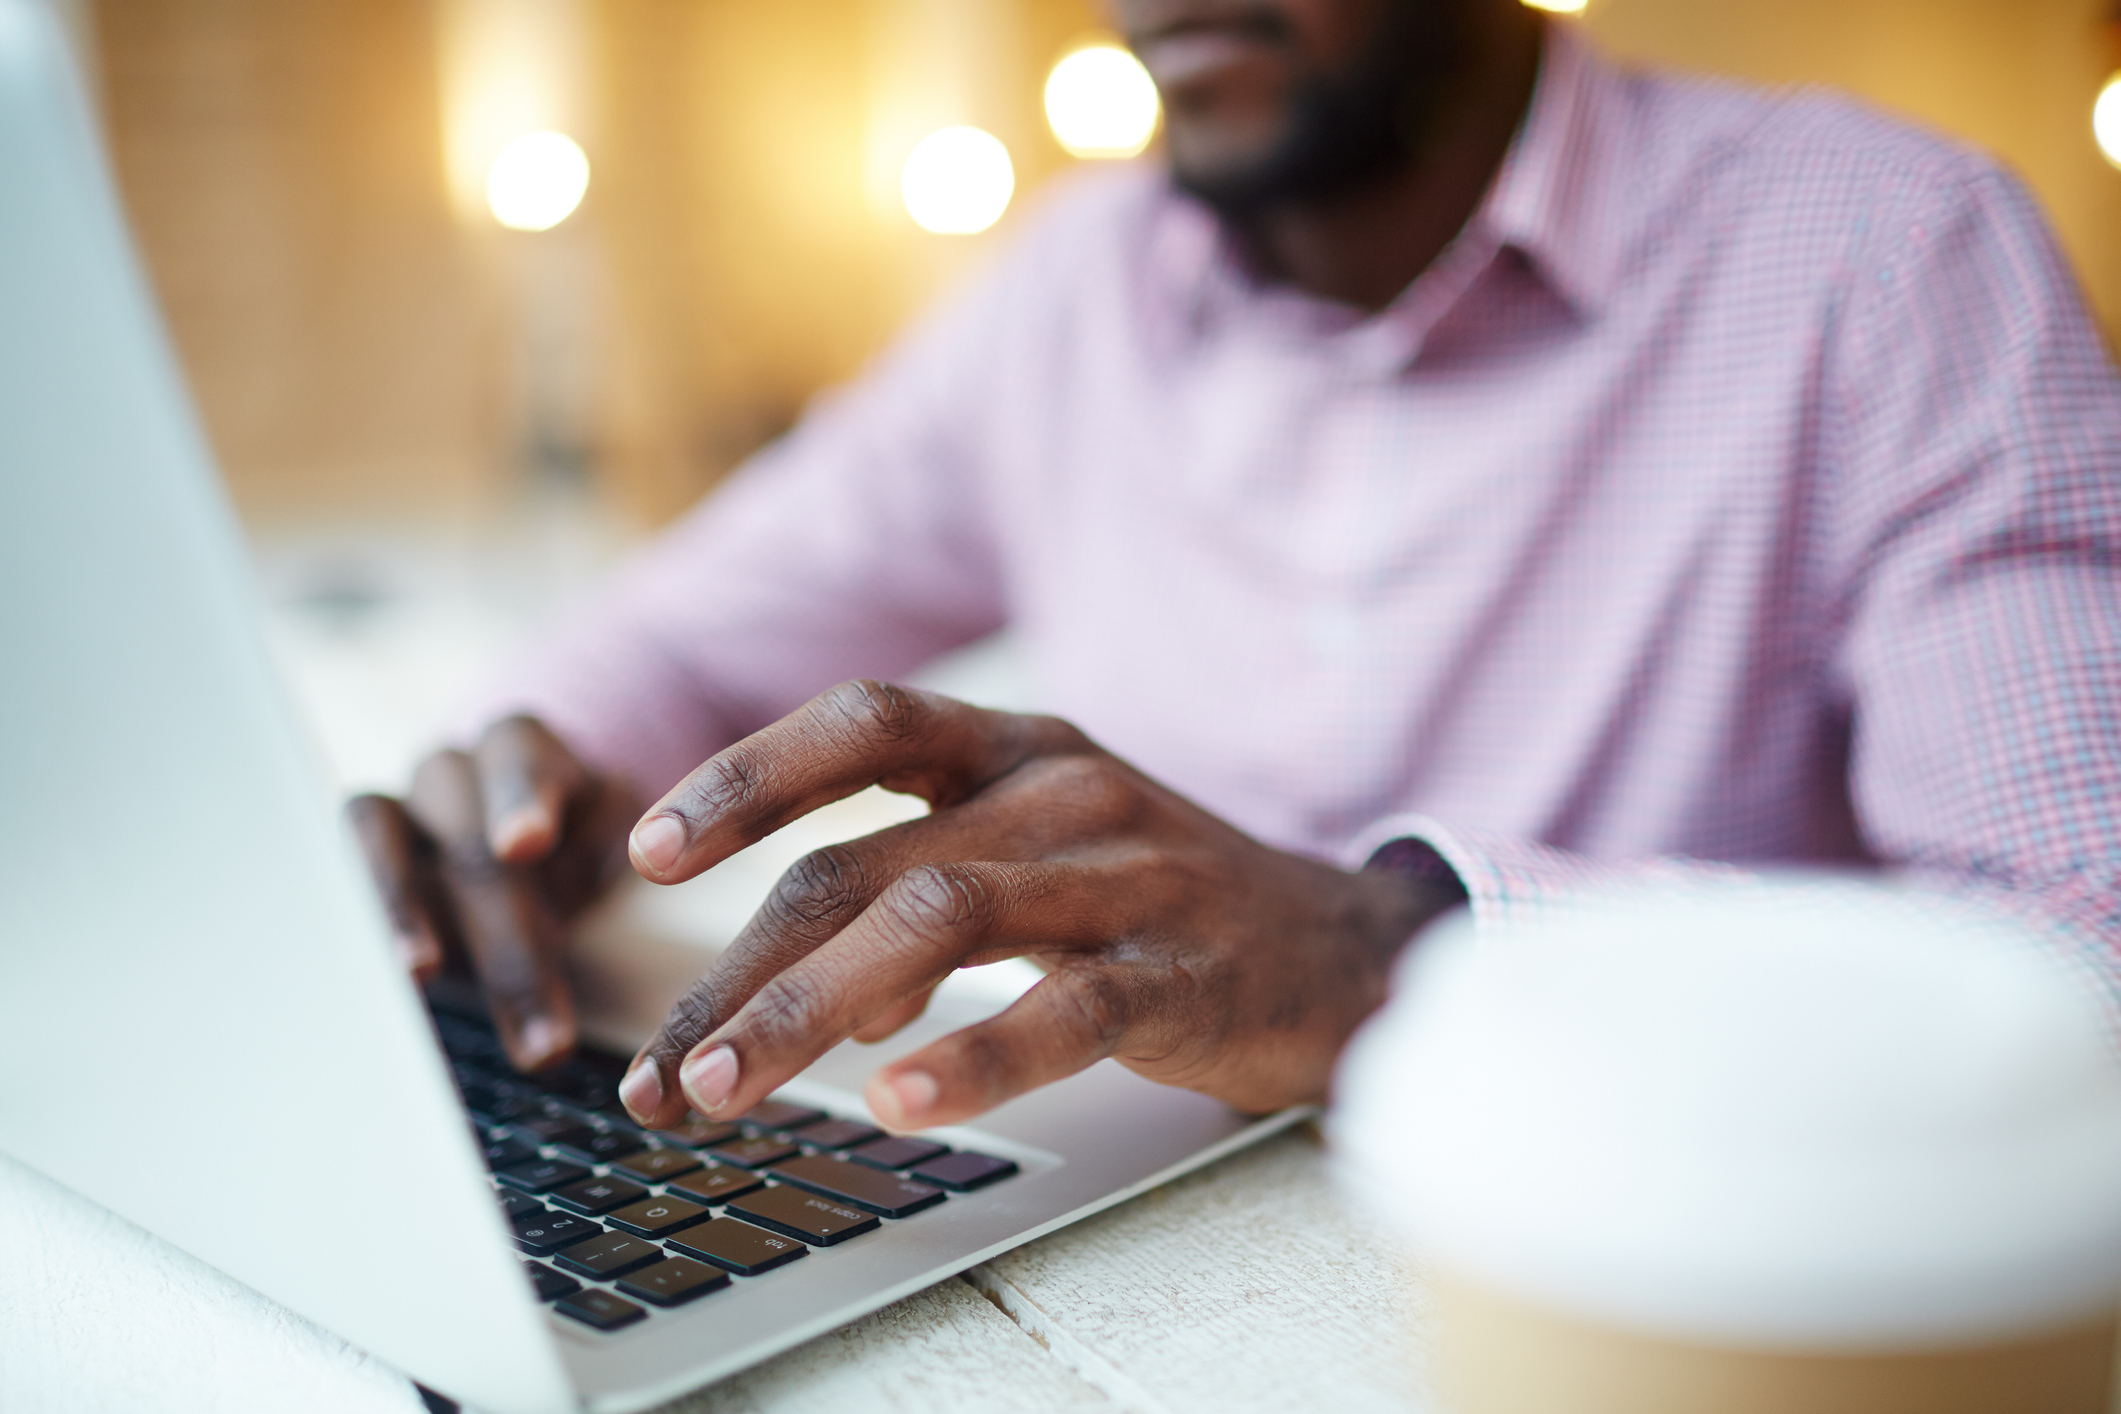 Stock photo of a man typing on a laptop computer